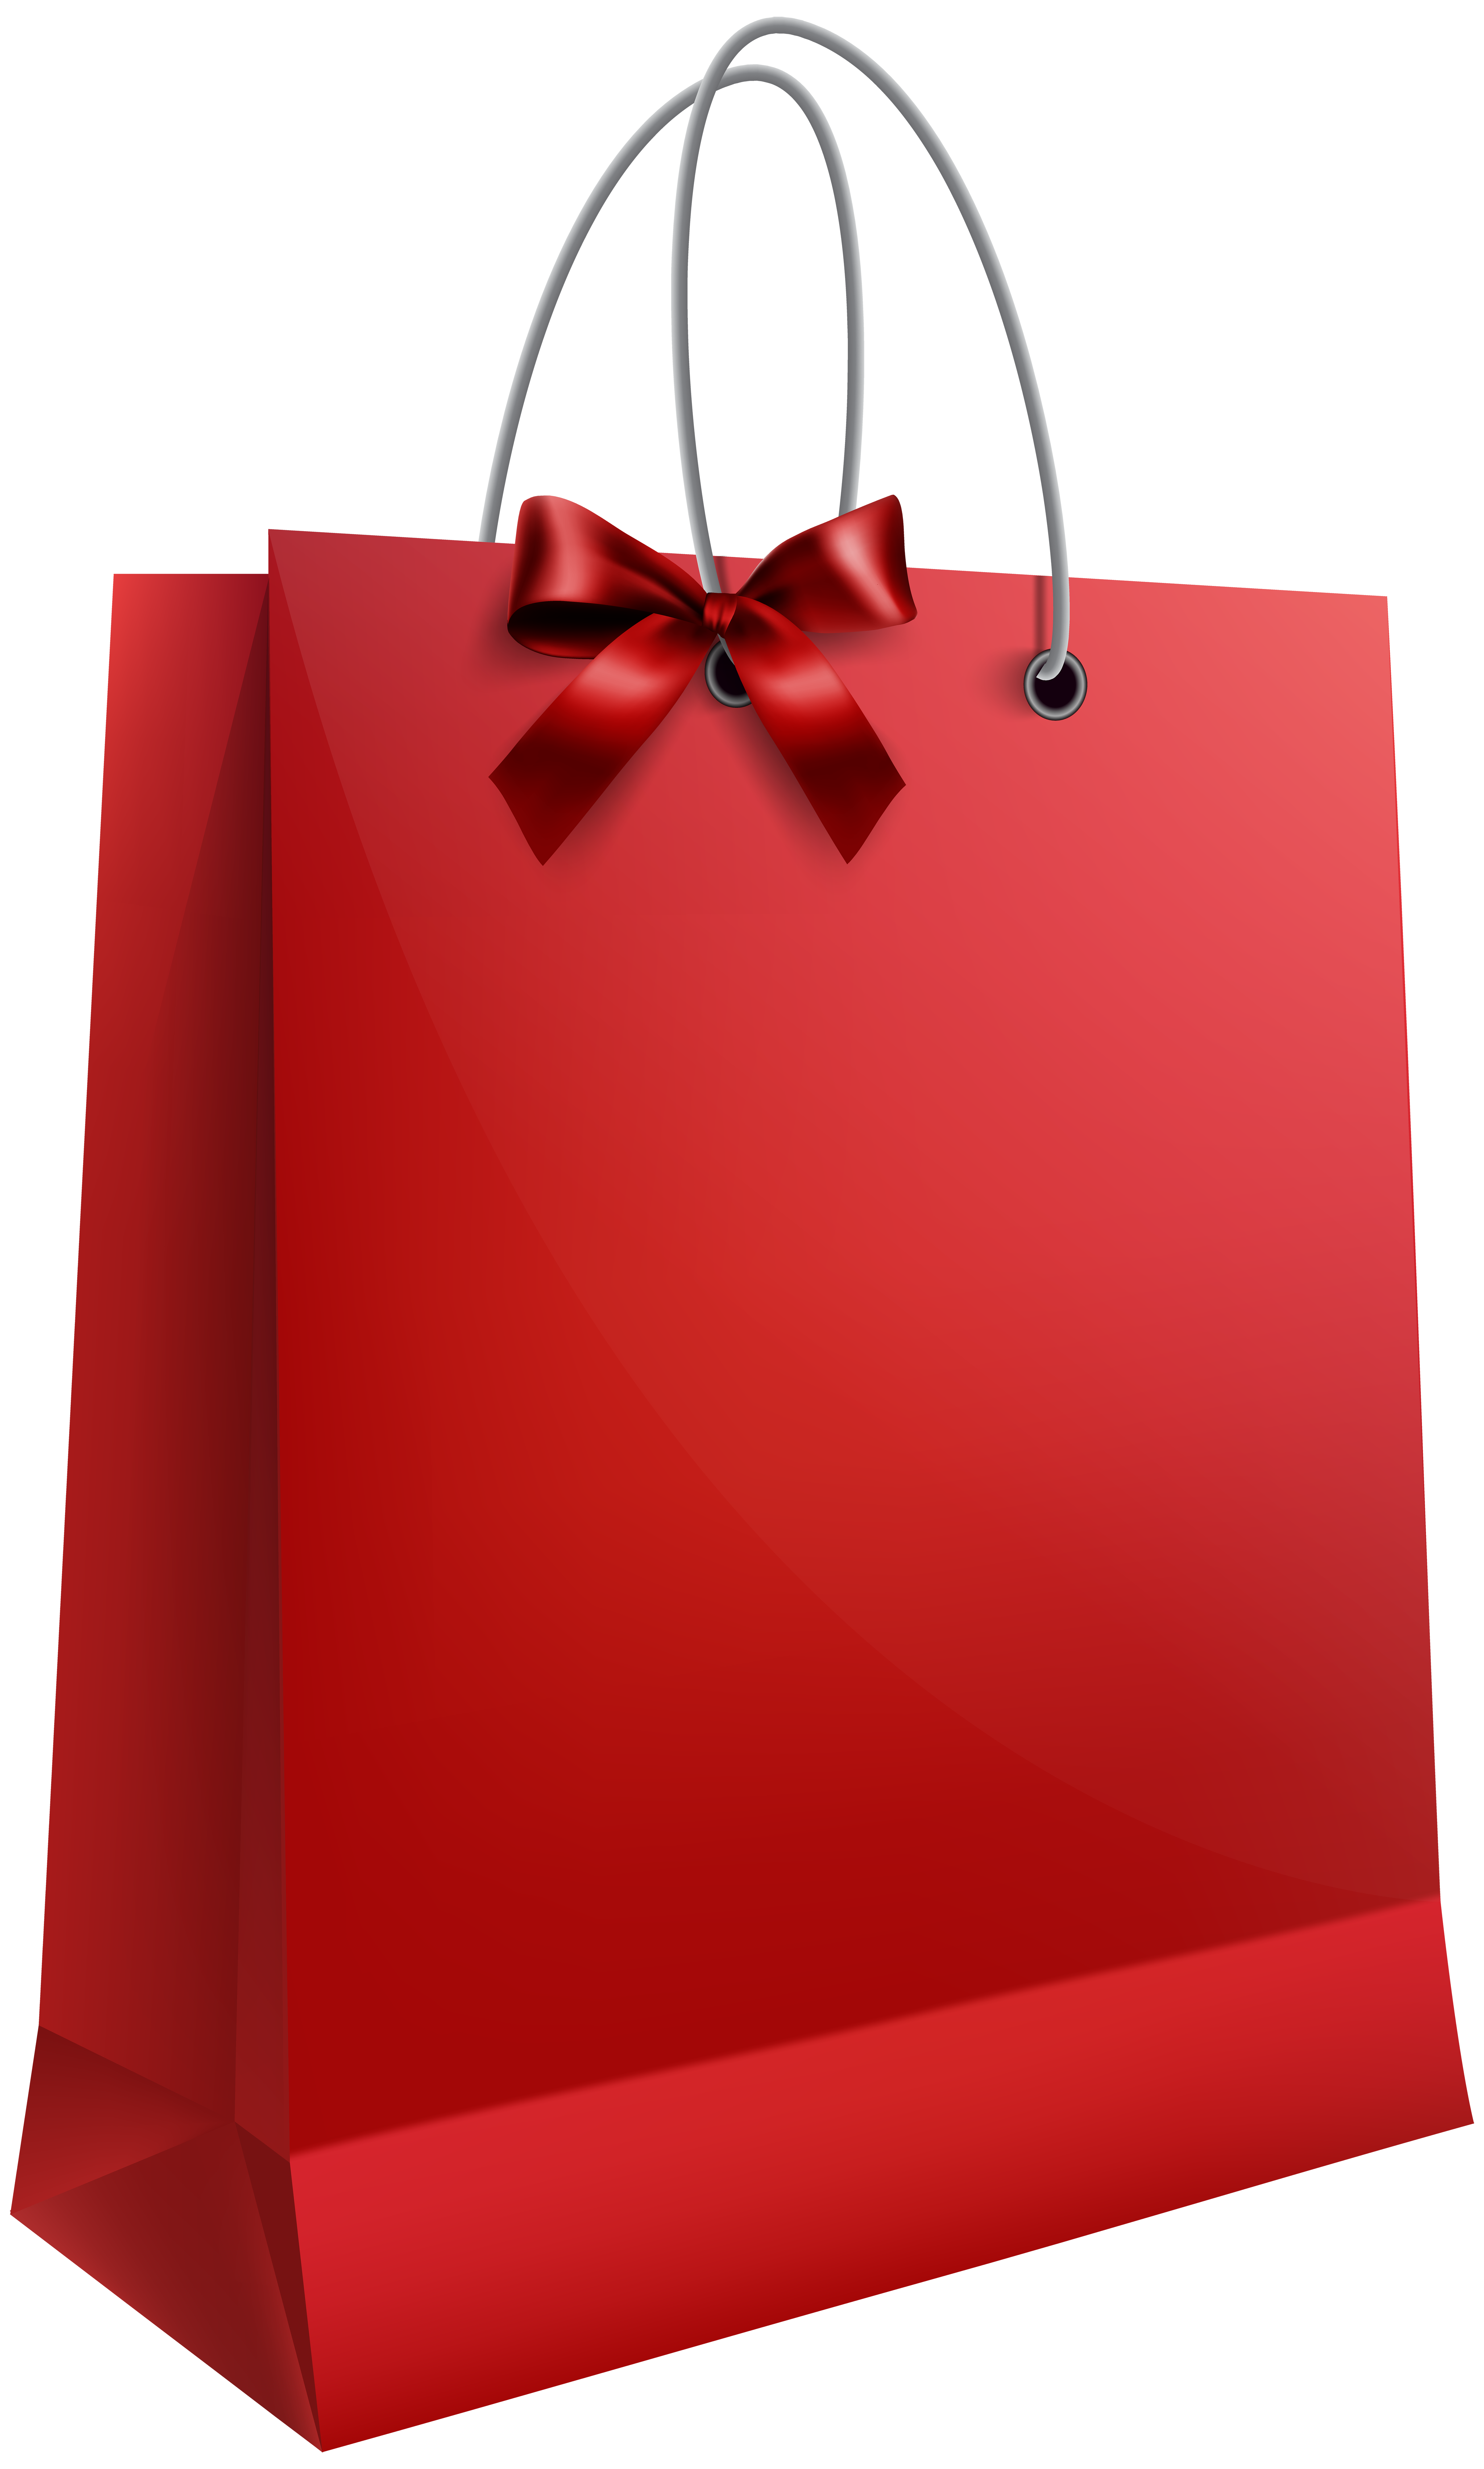 Bag of gifts clipart graphic free stock Red Gift Bag with Bow PNG Clip Art Image | Gallery Yopriceville ... graphic free stock